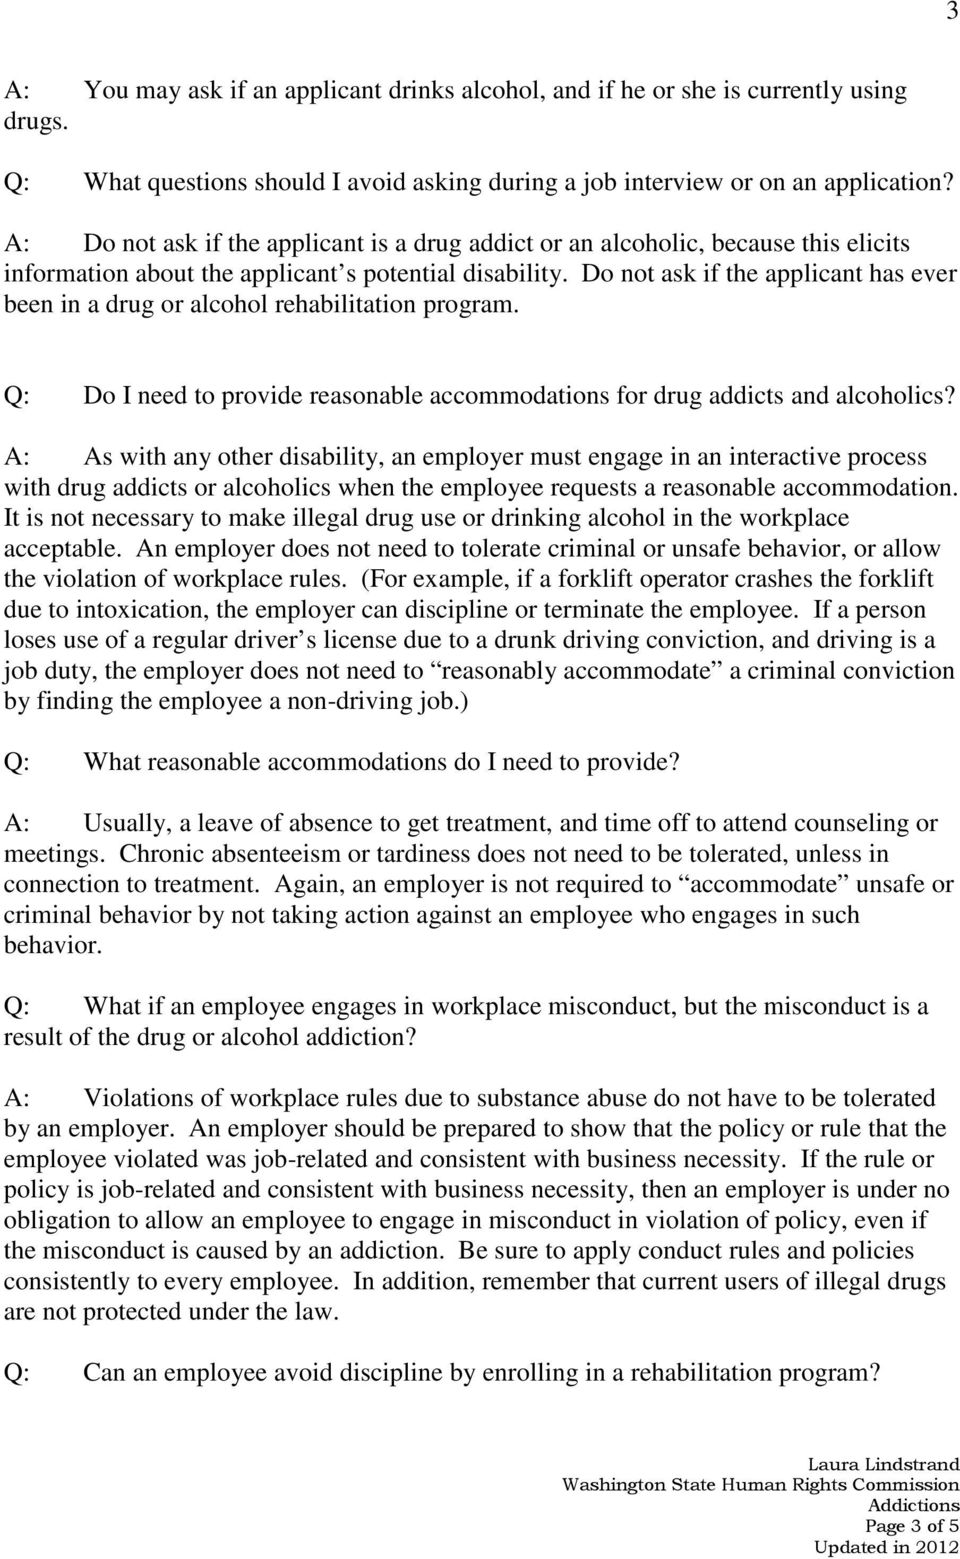 Do not ask if the applicant has ever been in a drug or alcohol rehabilitation program. Q: Do I need to provide reasonable accommodations for drug addicts and alcoholics?